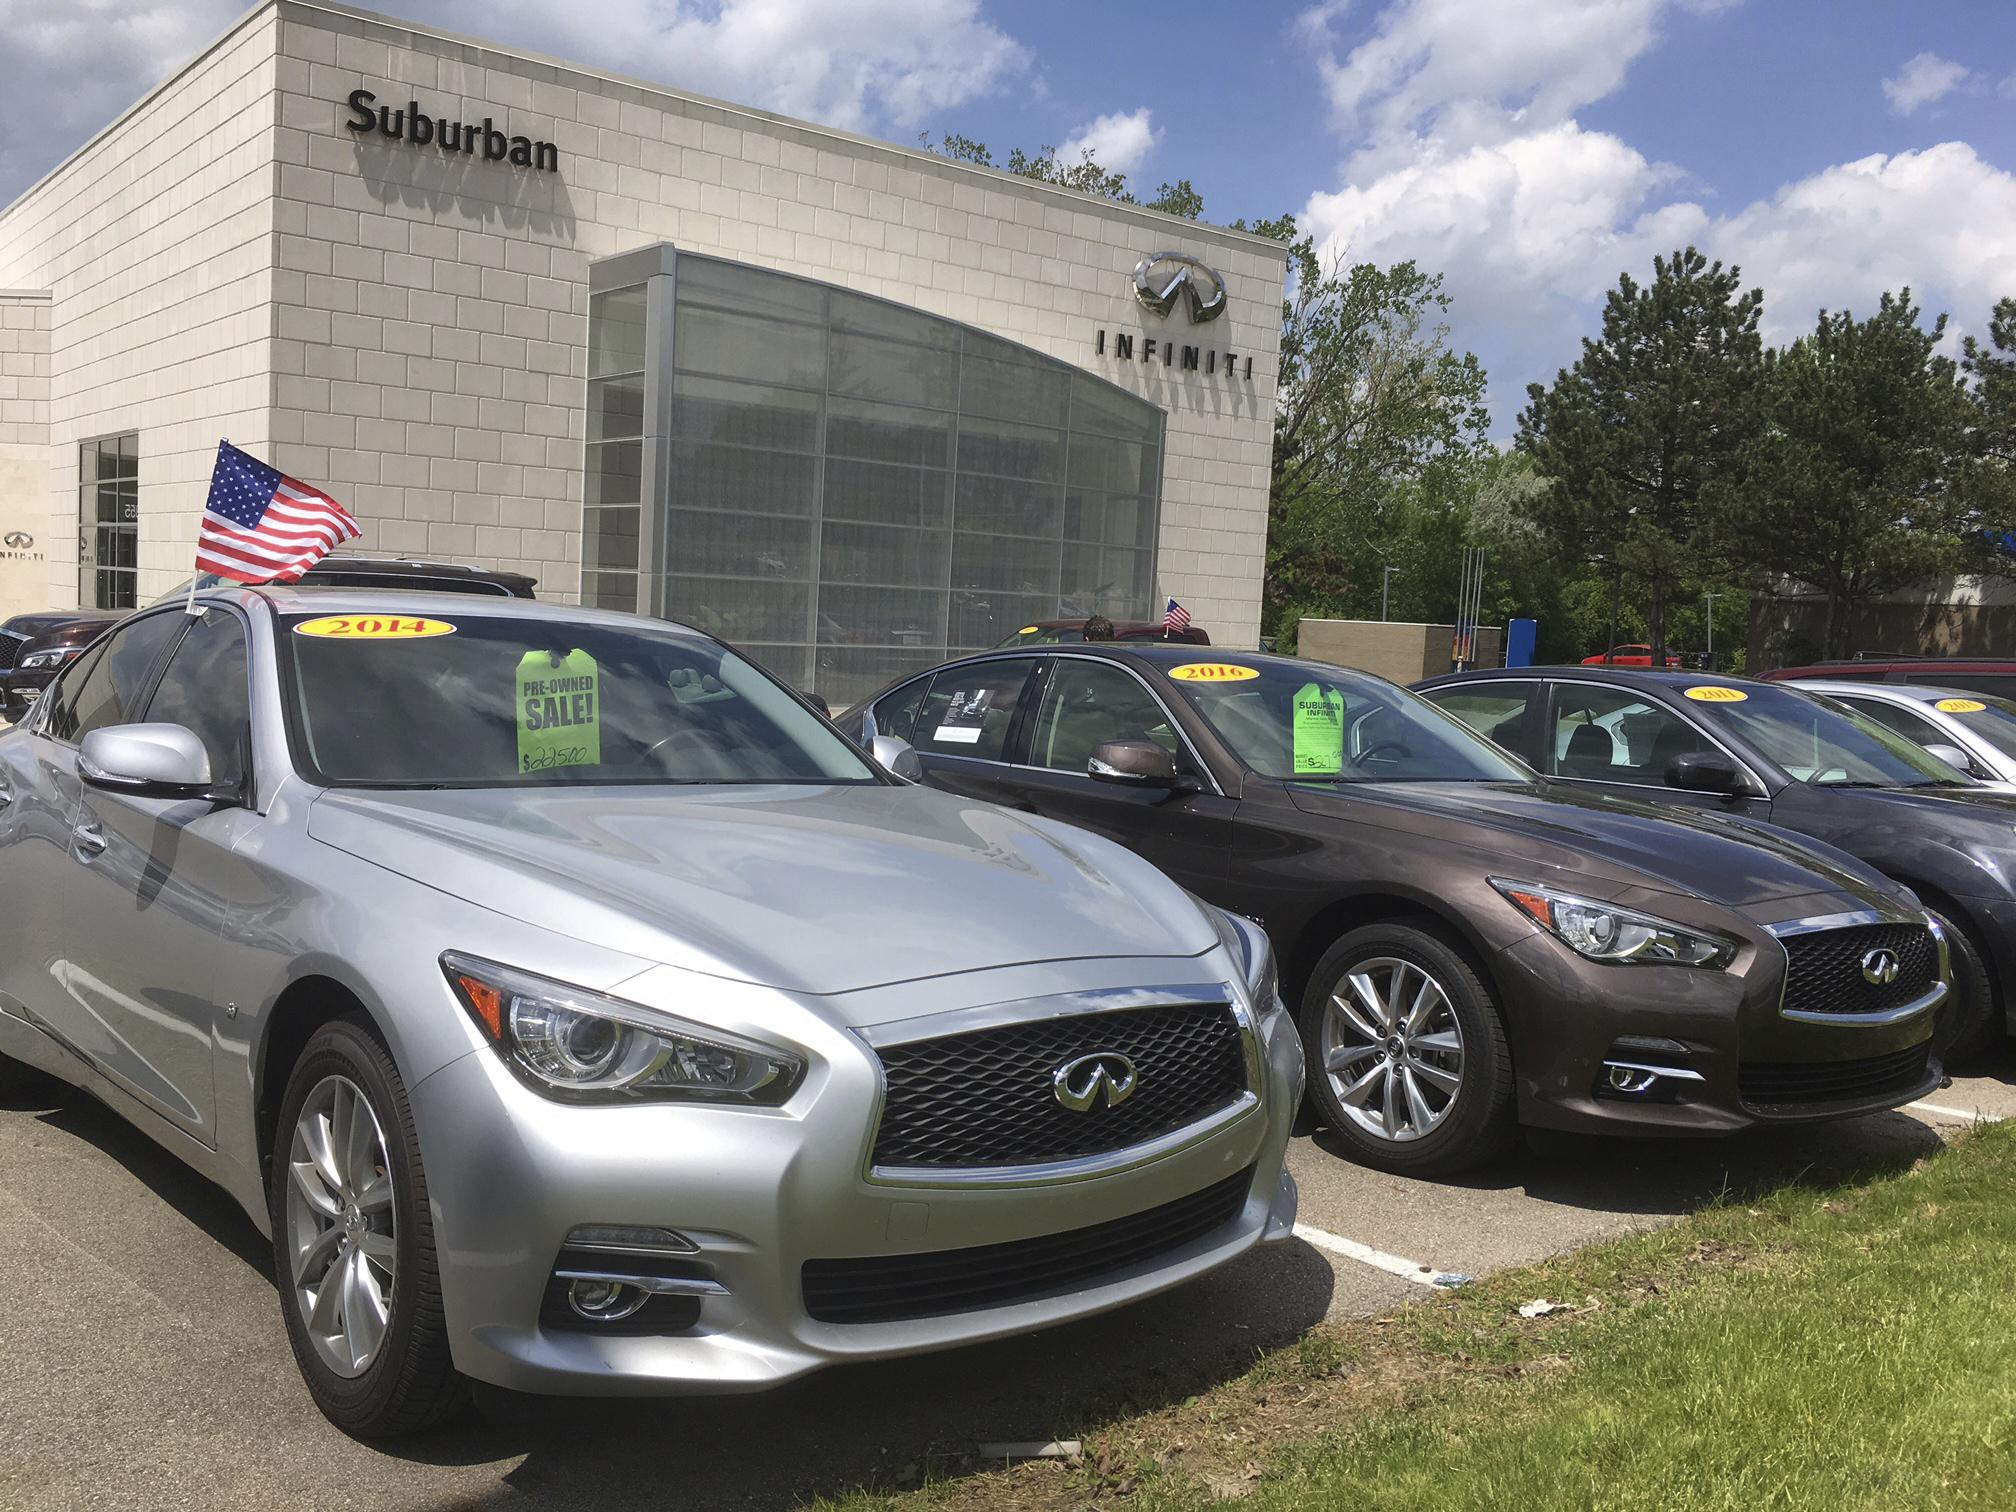 Off-lease used cars are flooding market, pushing prices down | The ...